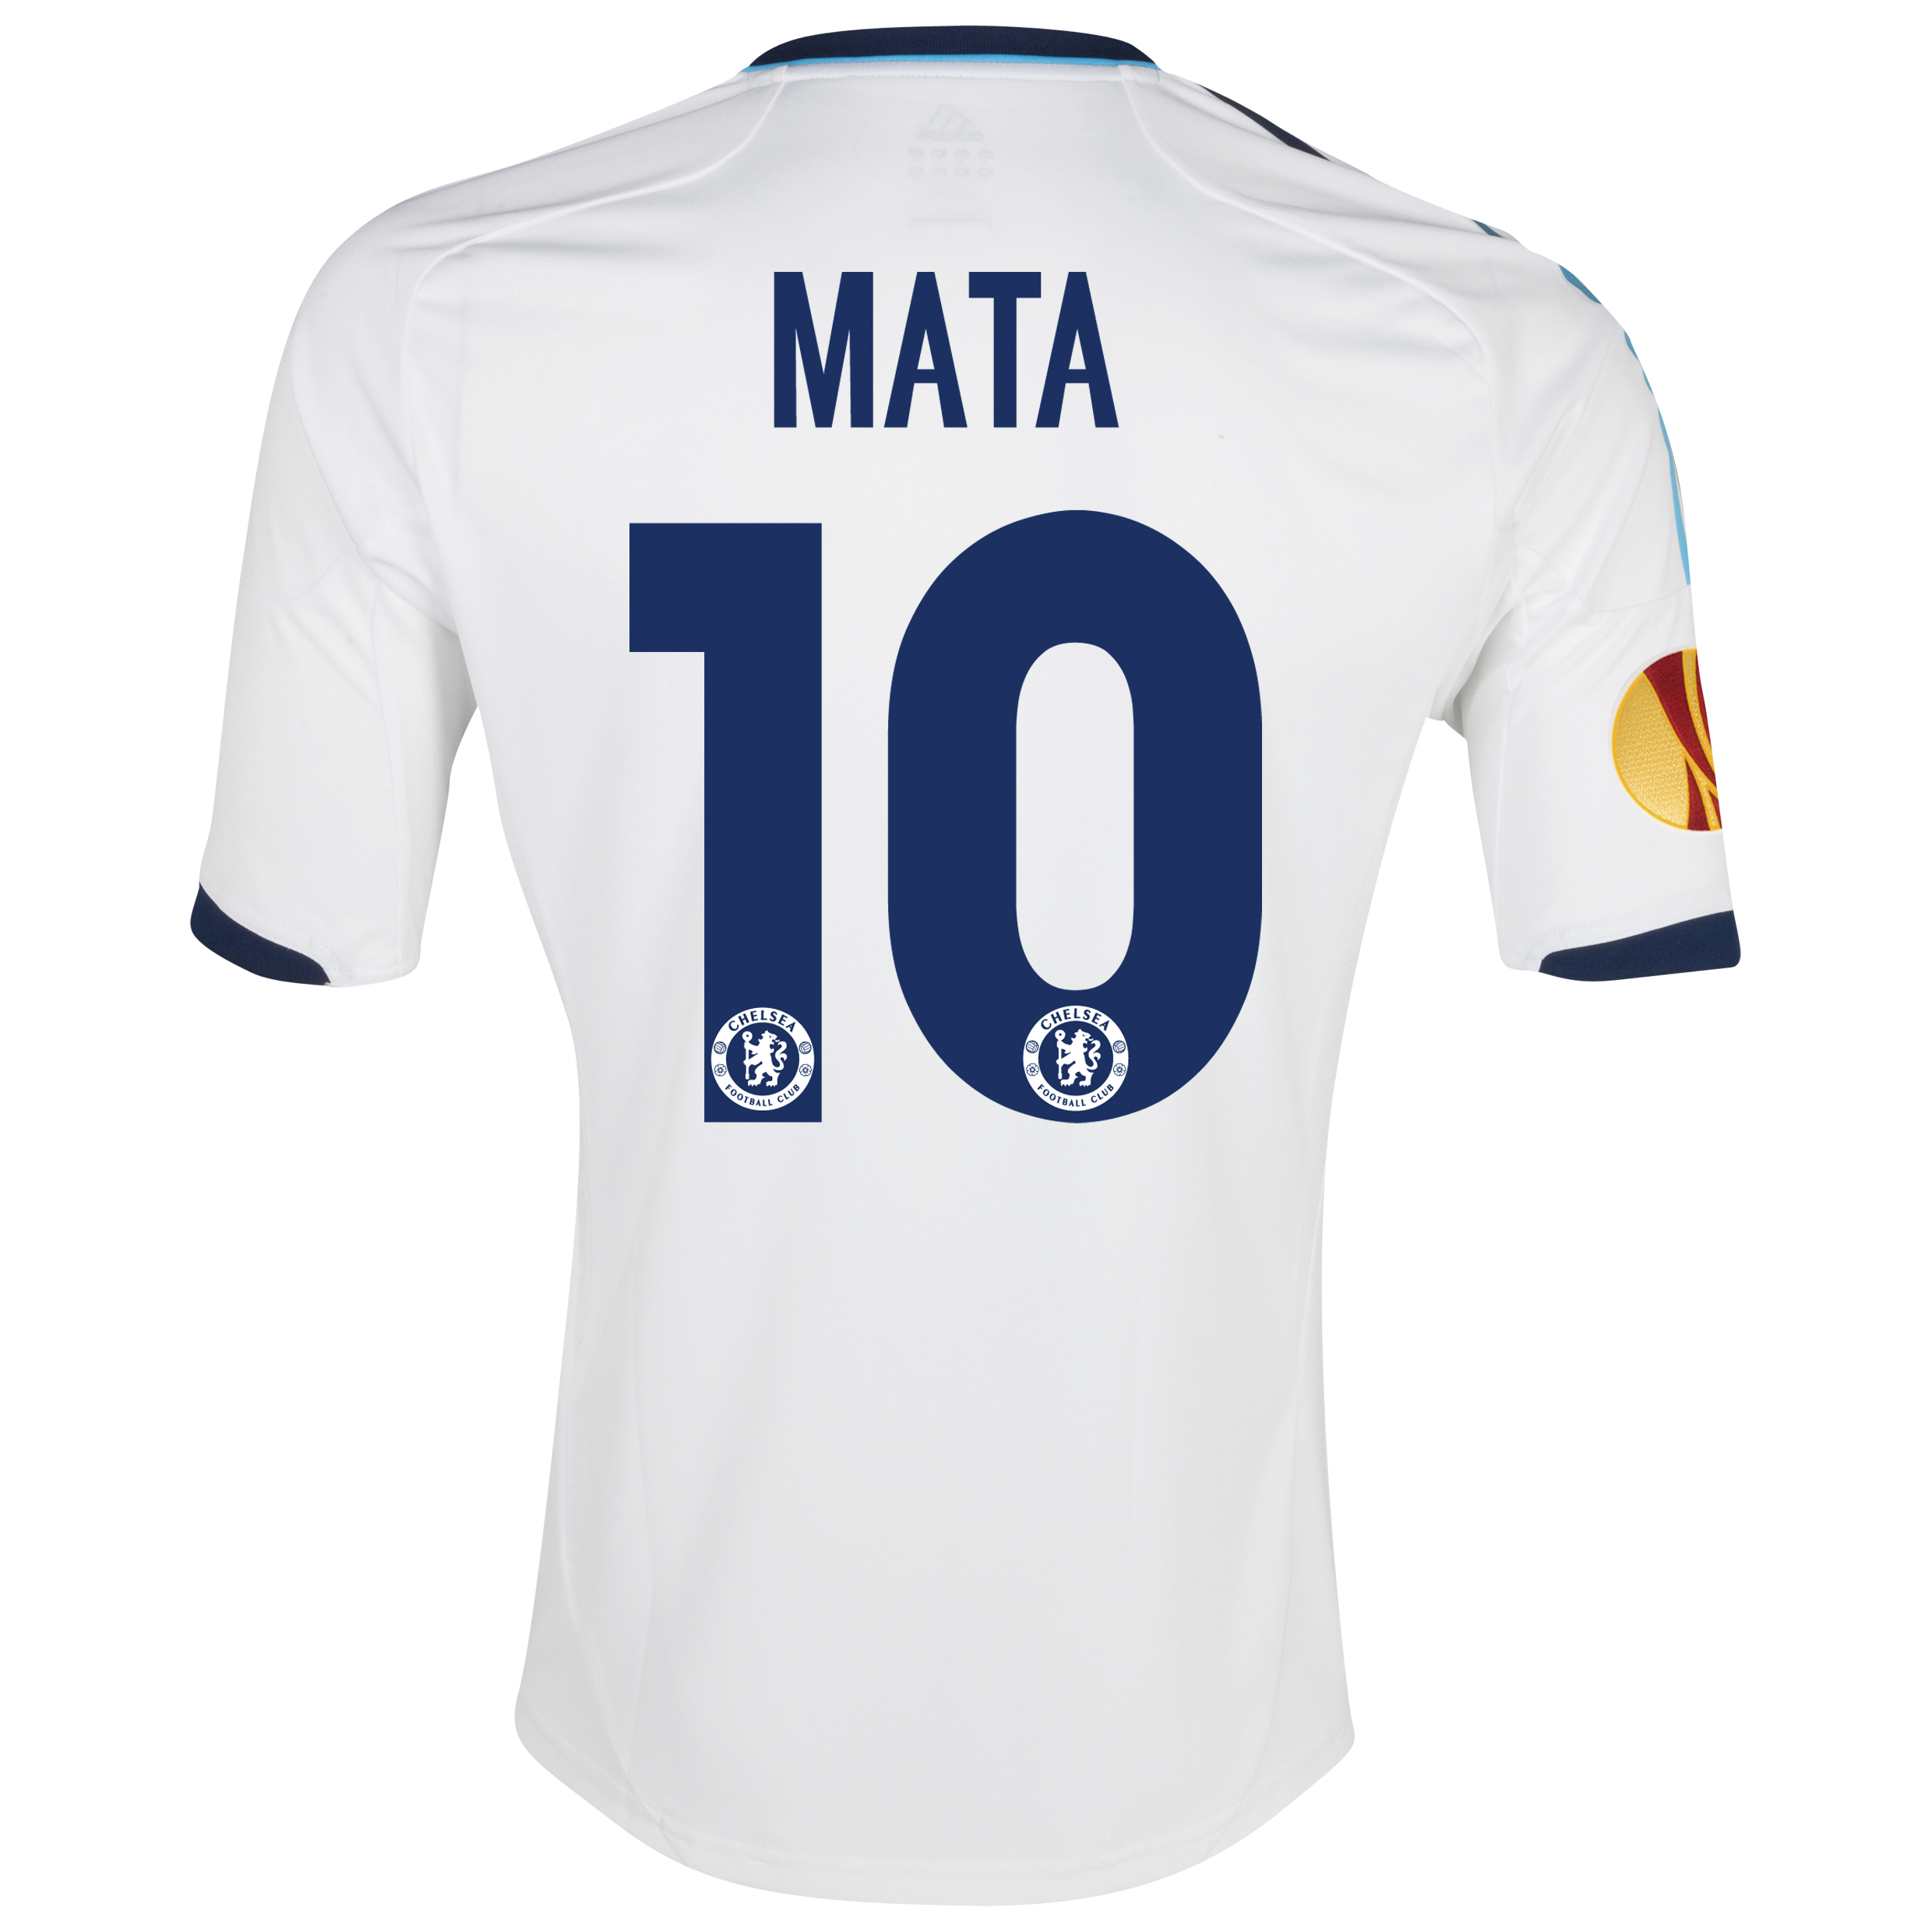 Chelsea UEFA Europa League Away Shirt 2012/13 with Mata 10 printing Including Europa Badge